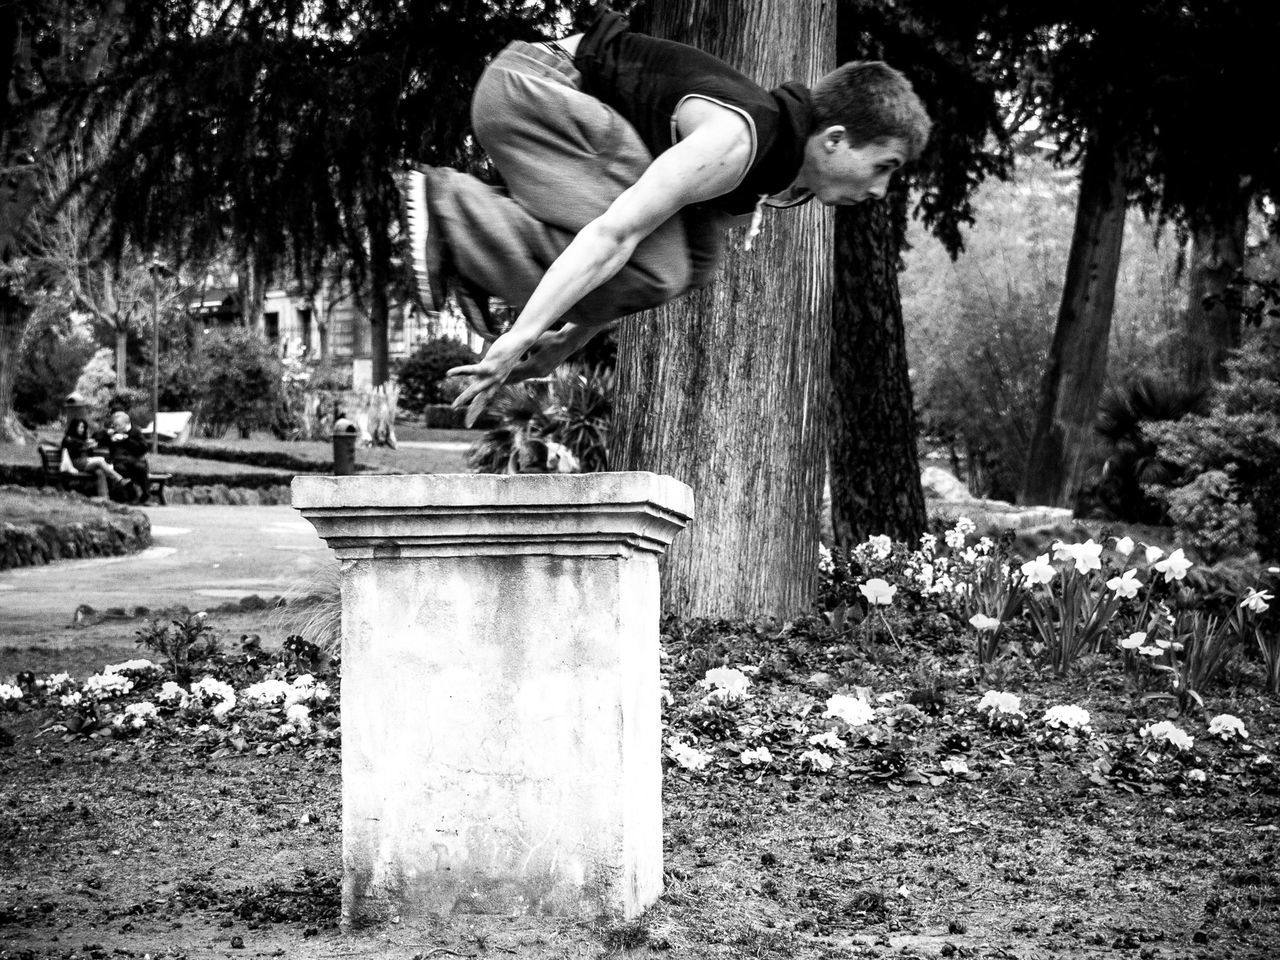 Sport In The City Arles Camargue France Sport Traveling People Parkour Capturing Movement Capture The Moment B&w Street Photography